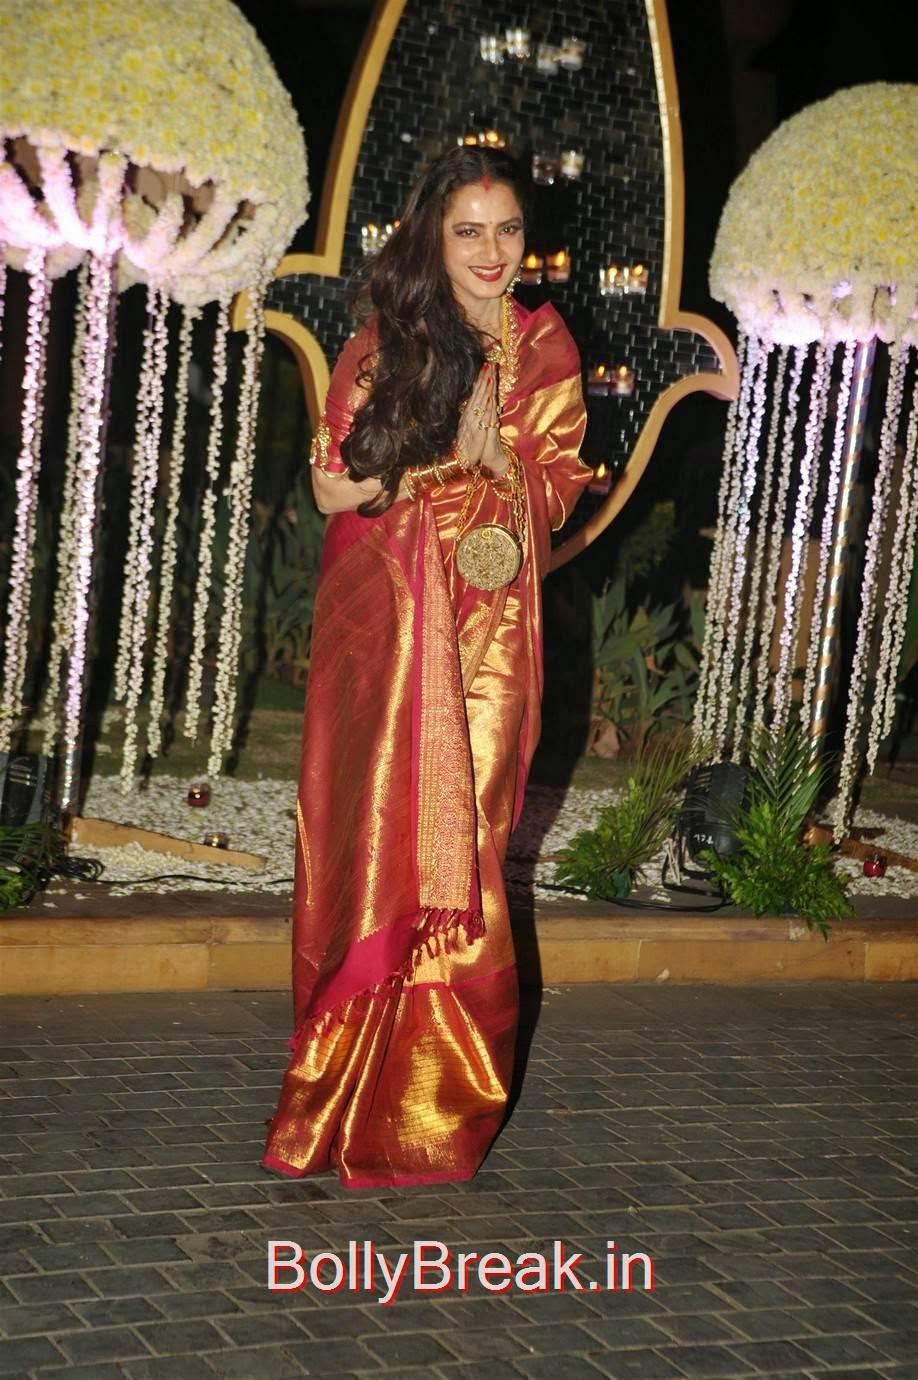 Rekha Unseen Stills, Hot HD Images of Rekha in saree from Riddhi Malhotra Wedding Reception